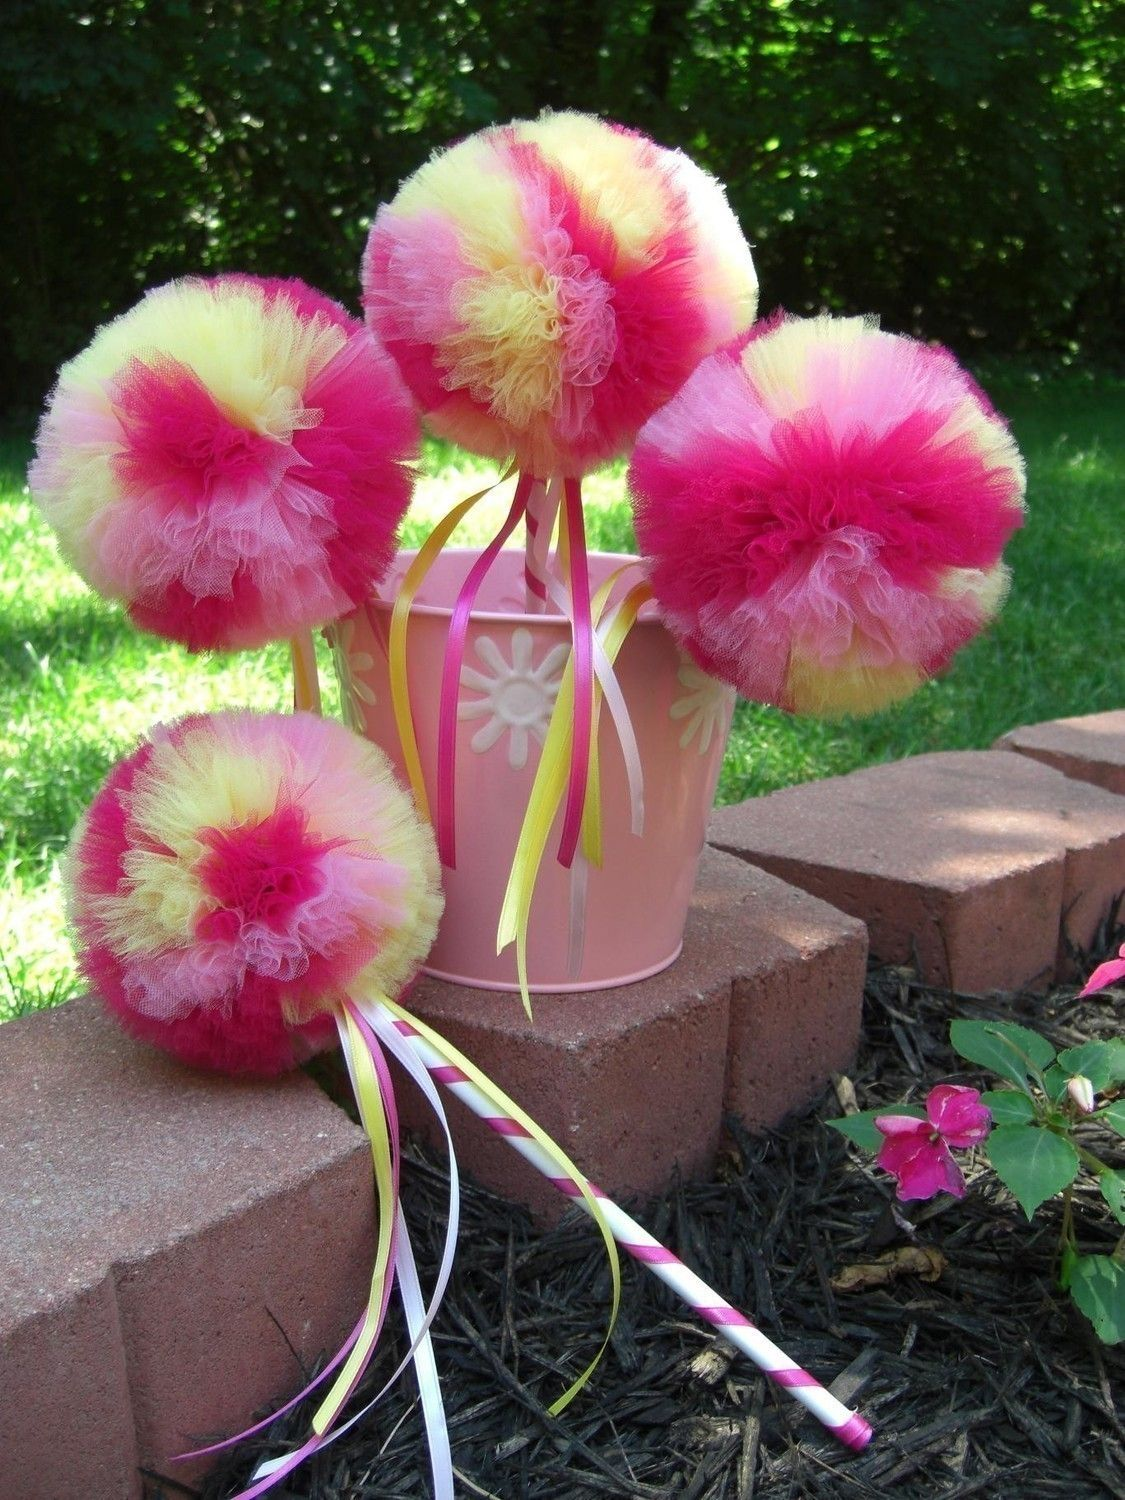 Tulle princess wands, party favors@k